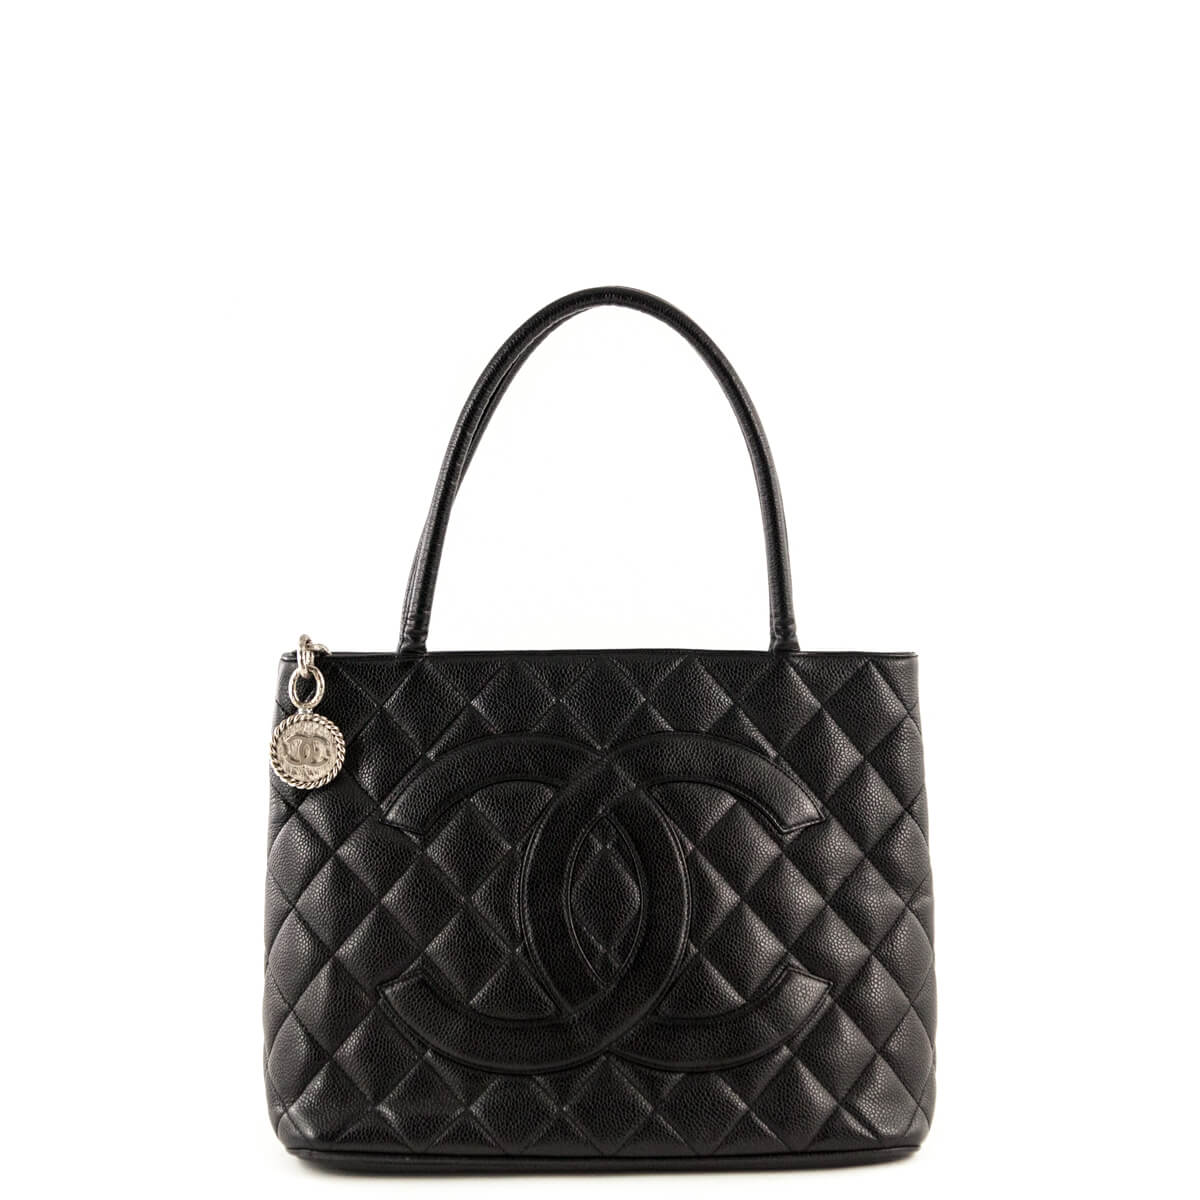 Chanel Black Caviar Medallion Tote - LOVE that BAG - Preowned Authentic  Designer Handbags ... 3bd61ee8f0906